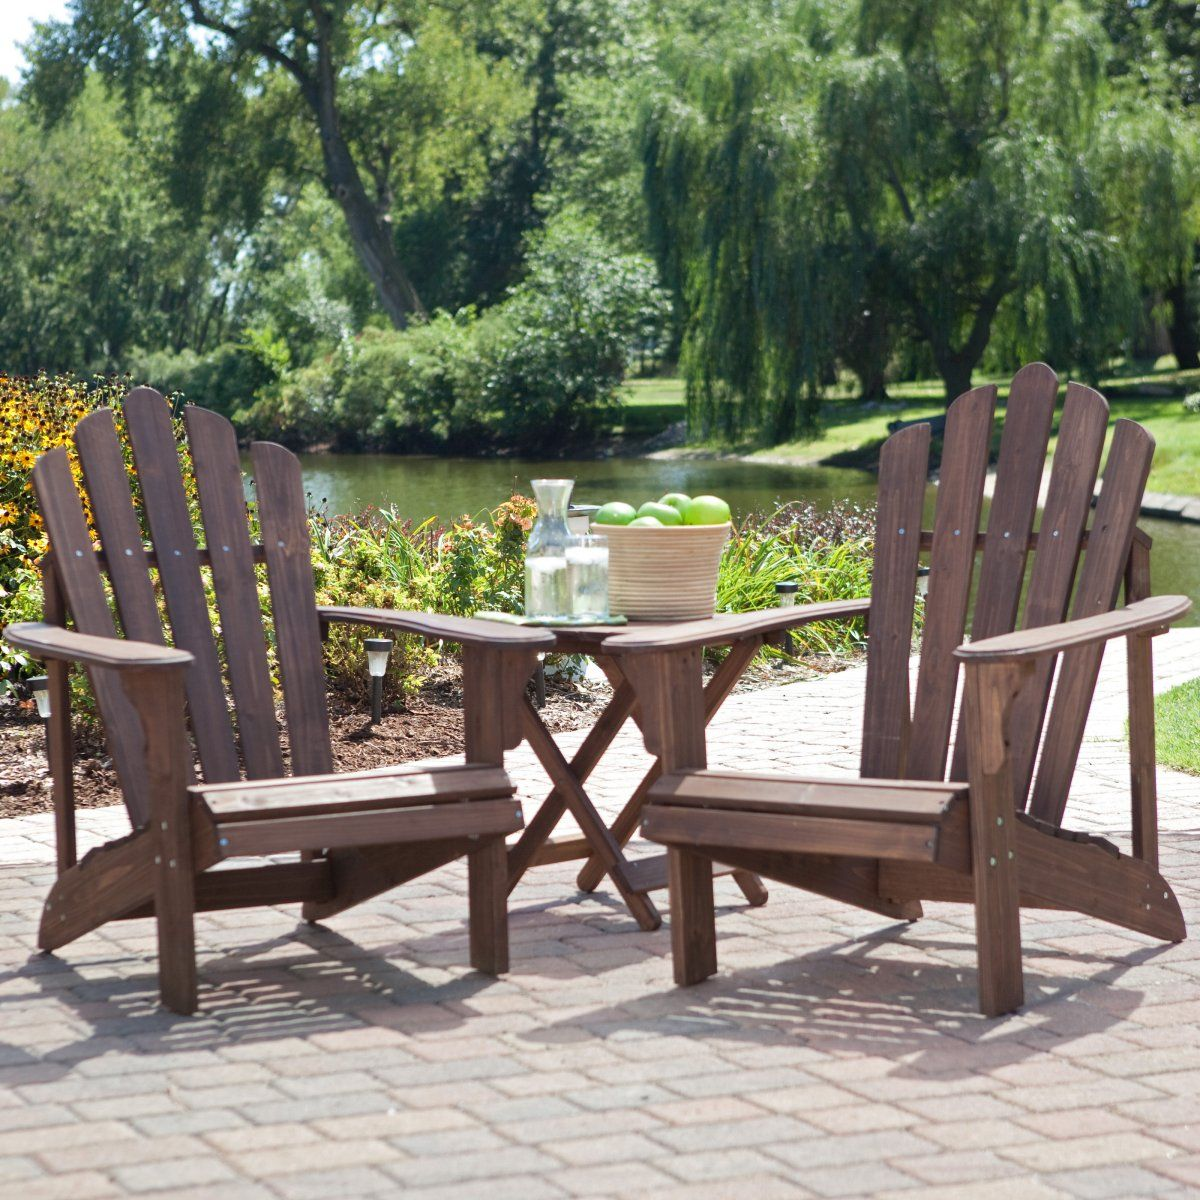 Adirondack Chair Set Coral Coast Adirondack Chair Set With Free Side Table Dark Brown